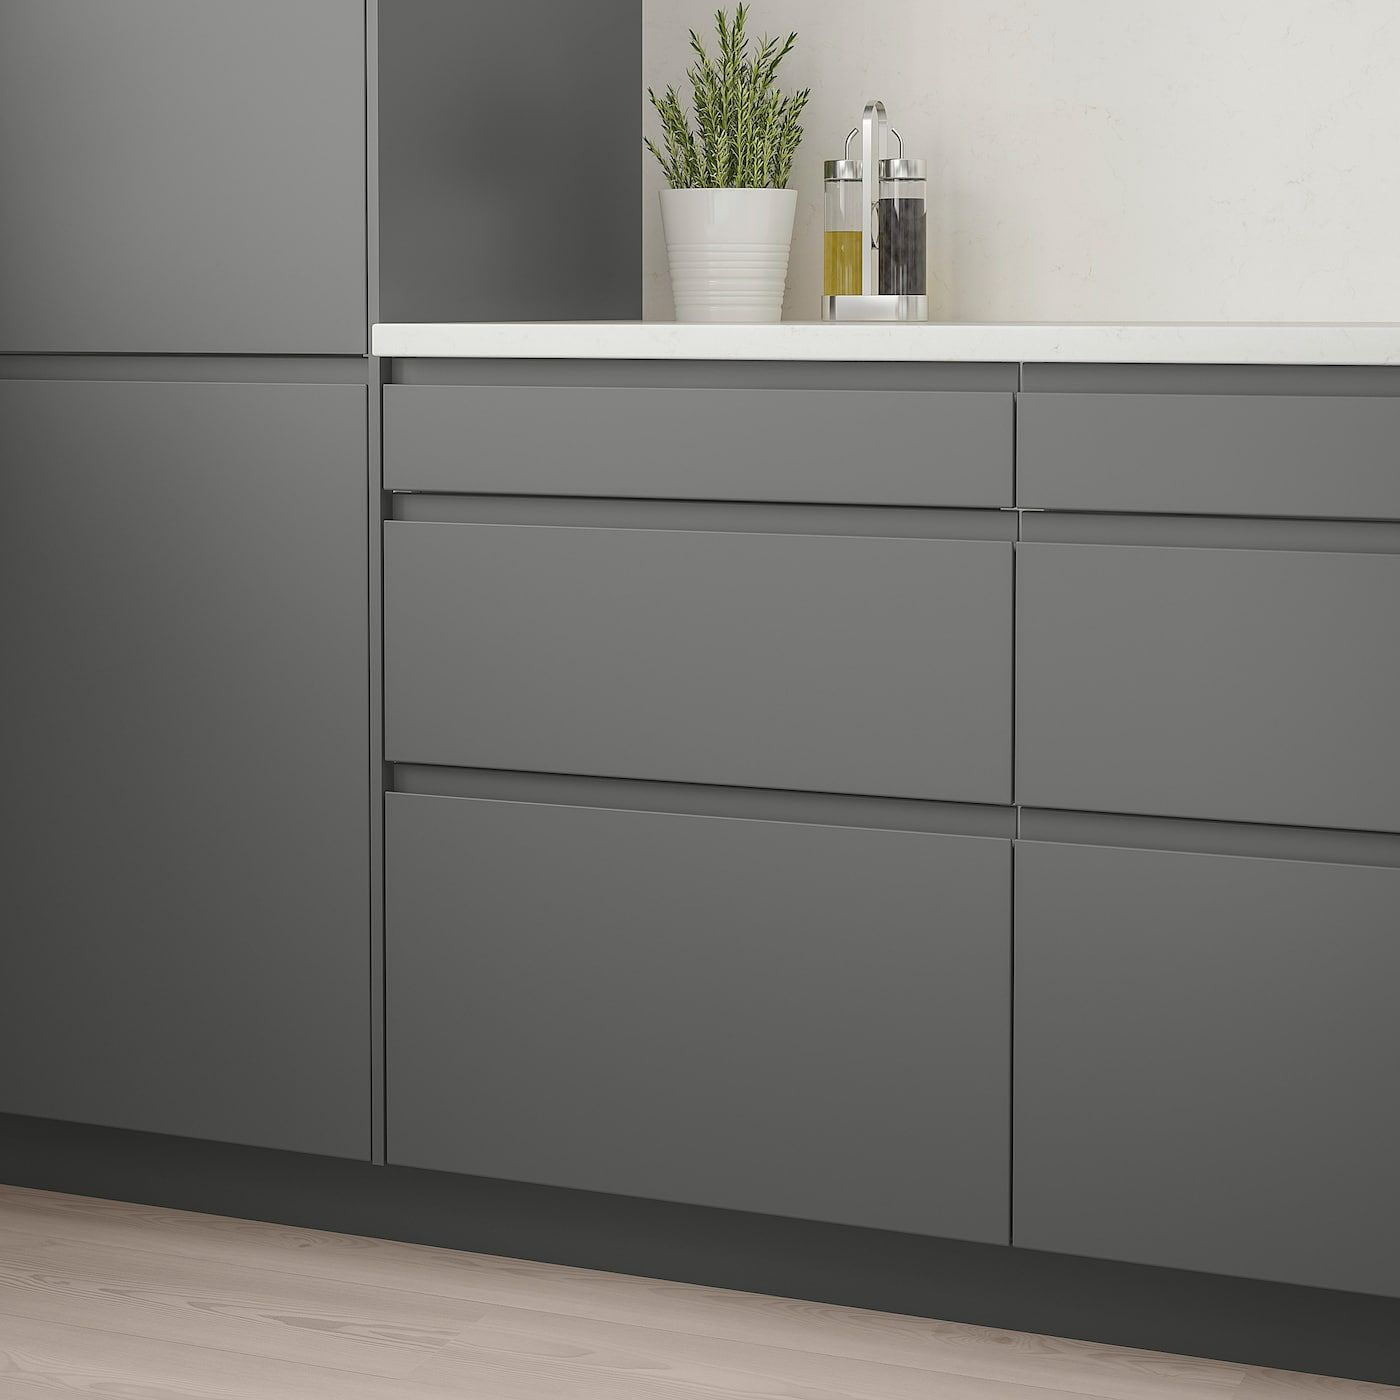 VOXTORP Drawer front, dark gray, 18x15 - IKEA